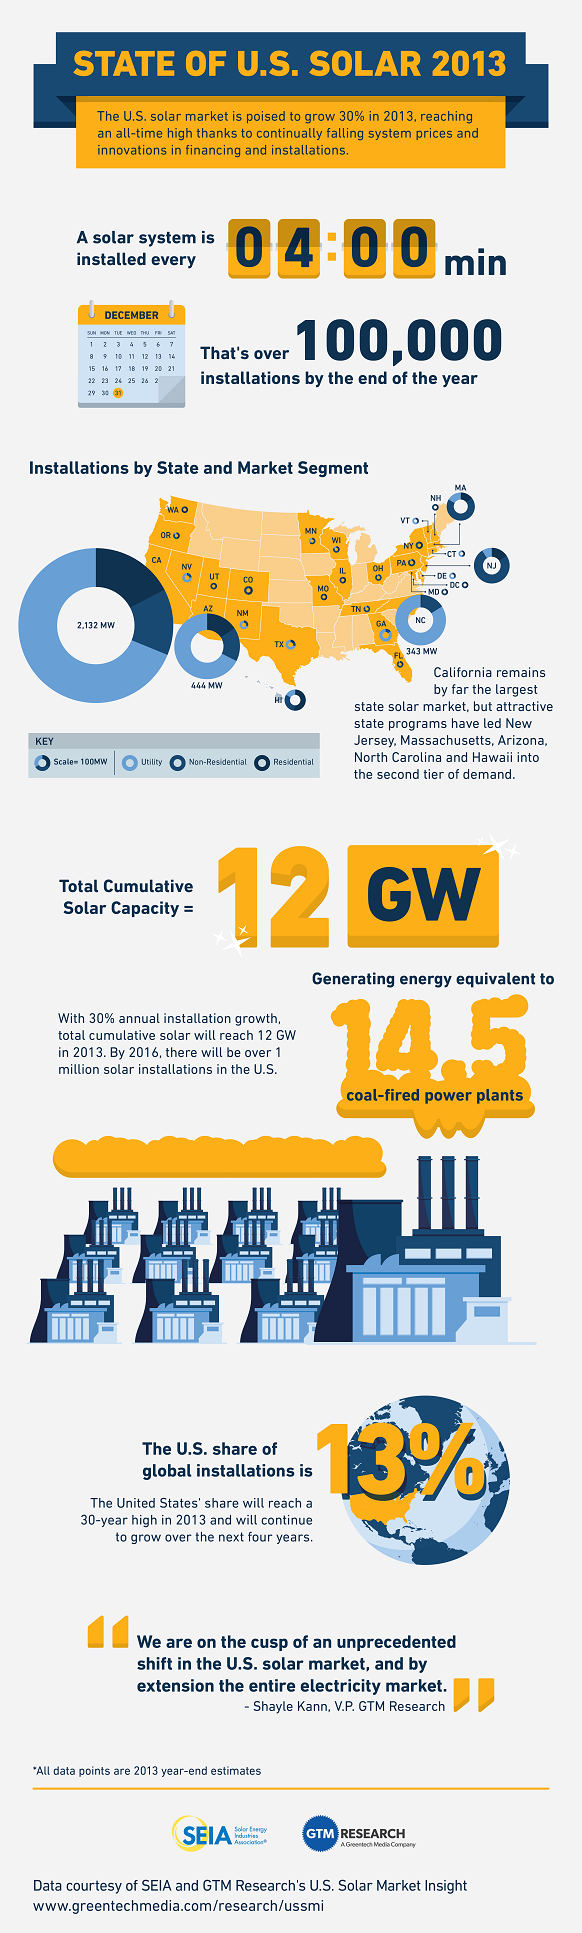 STATE-OF-US-SOLAR-2013-Q3-01